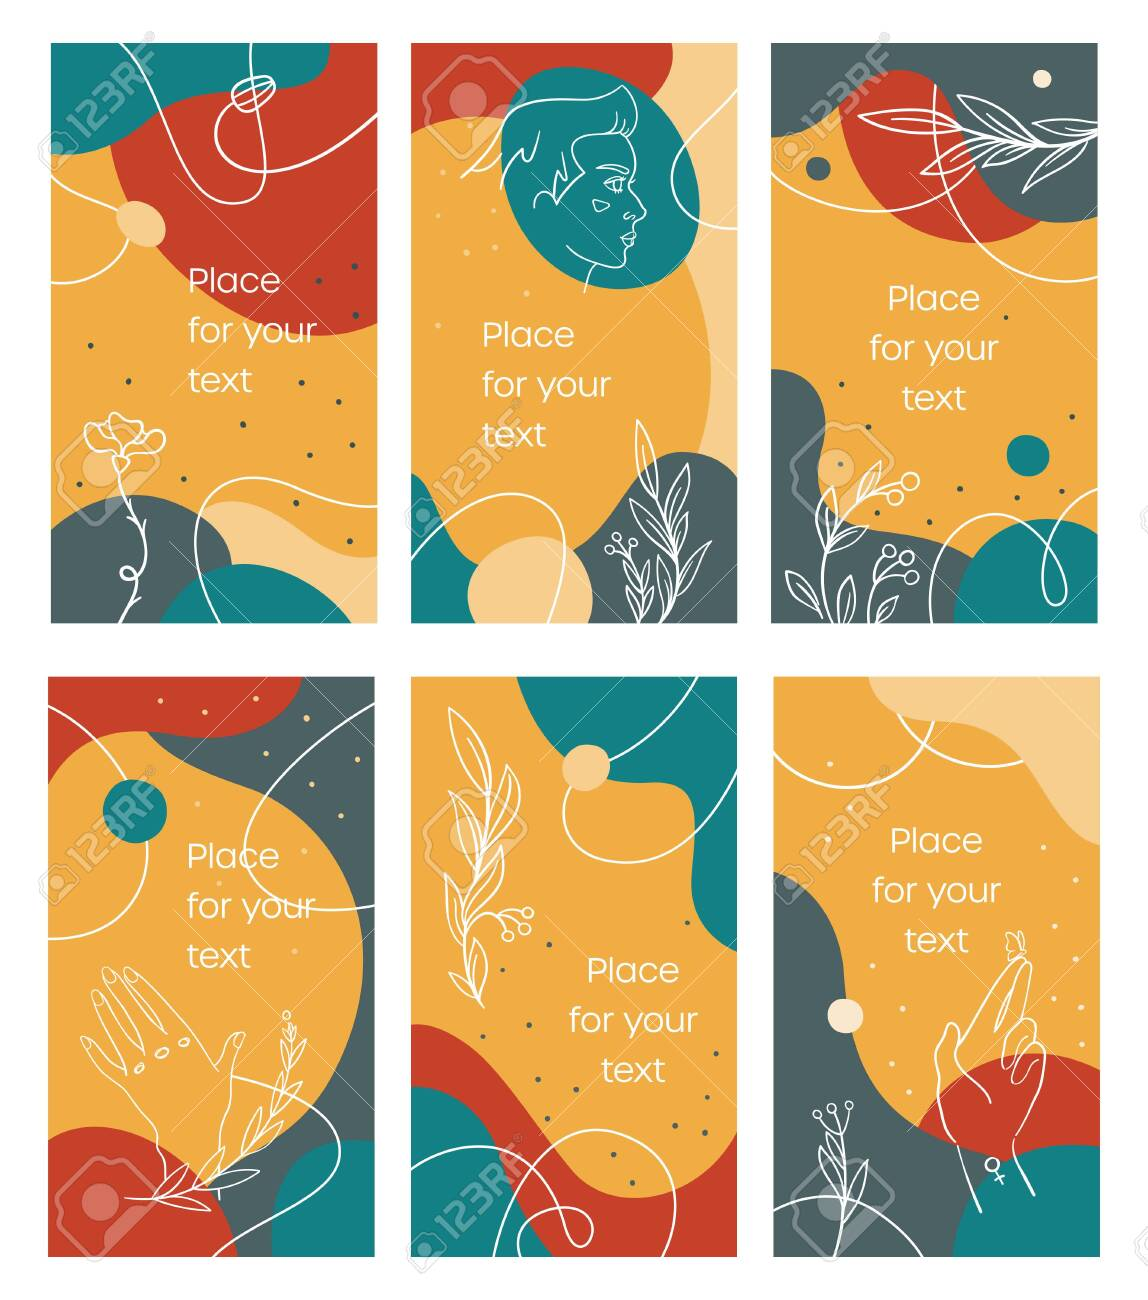 Summer stories template in bright abstract style - 141865650